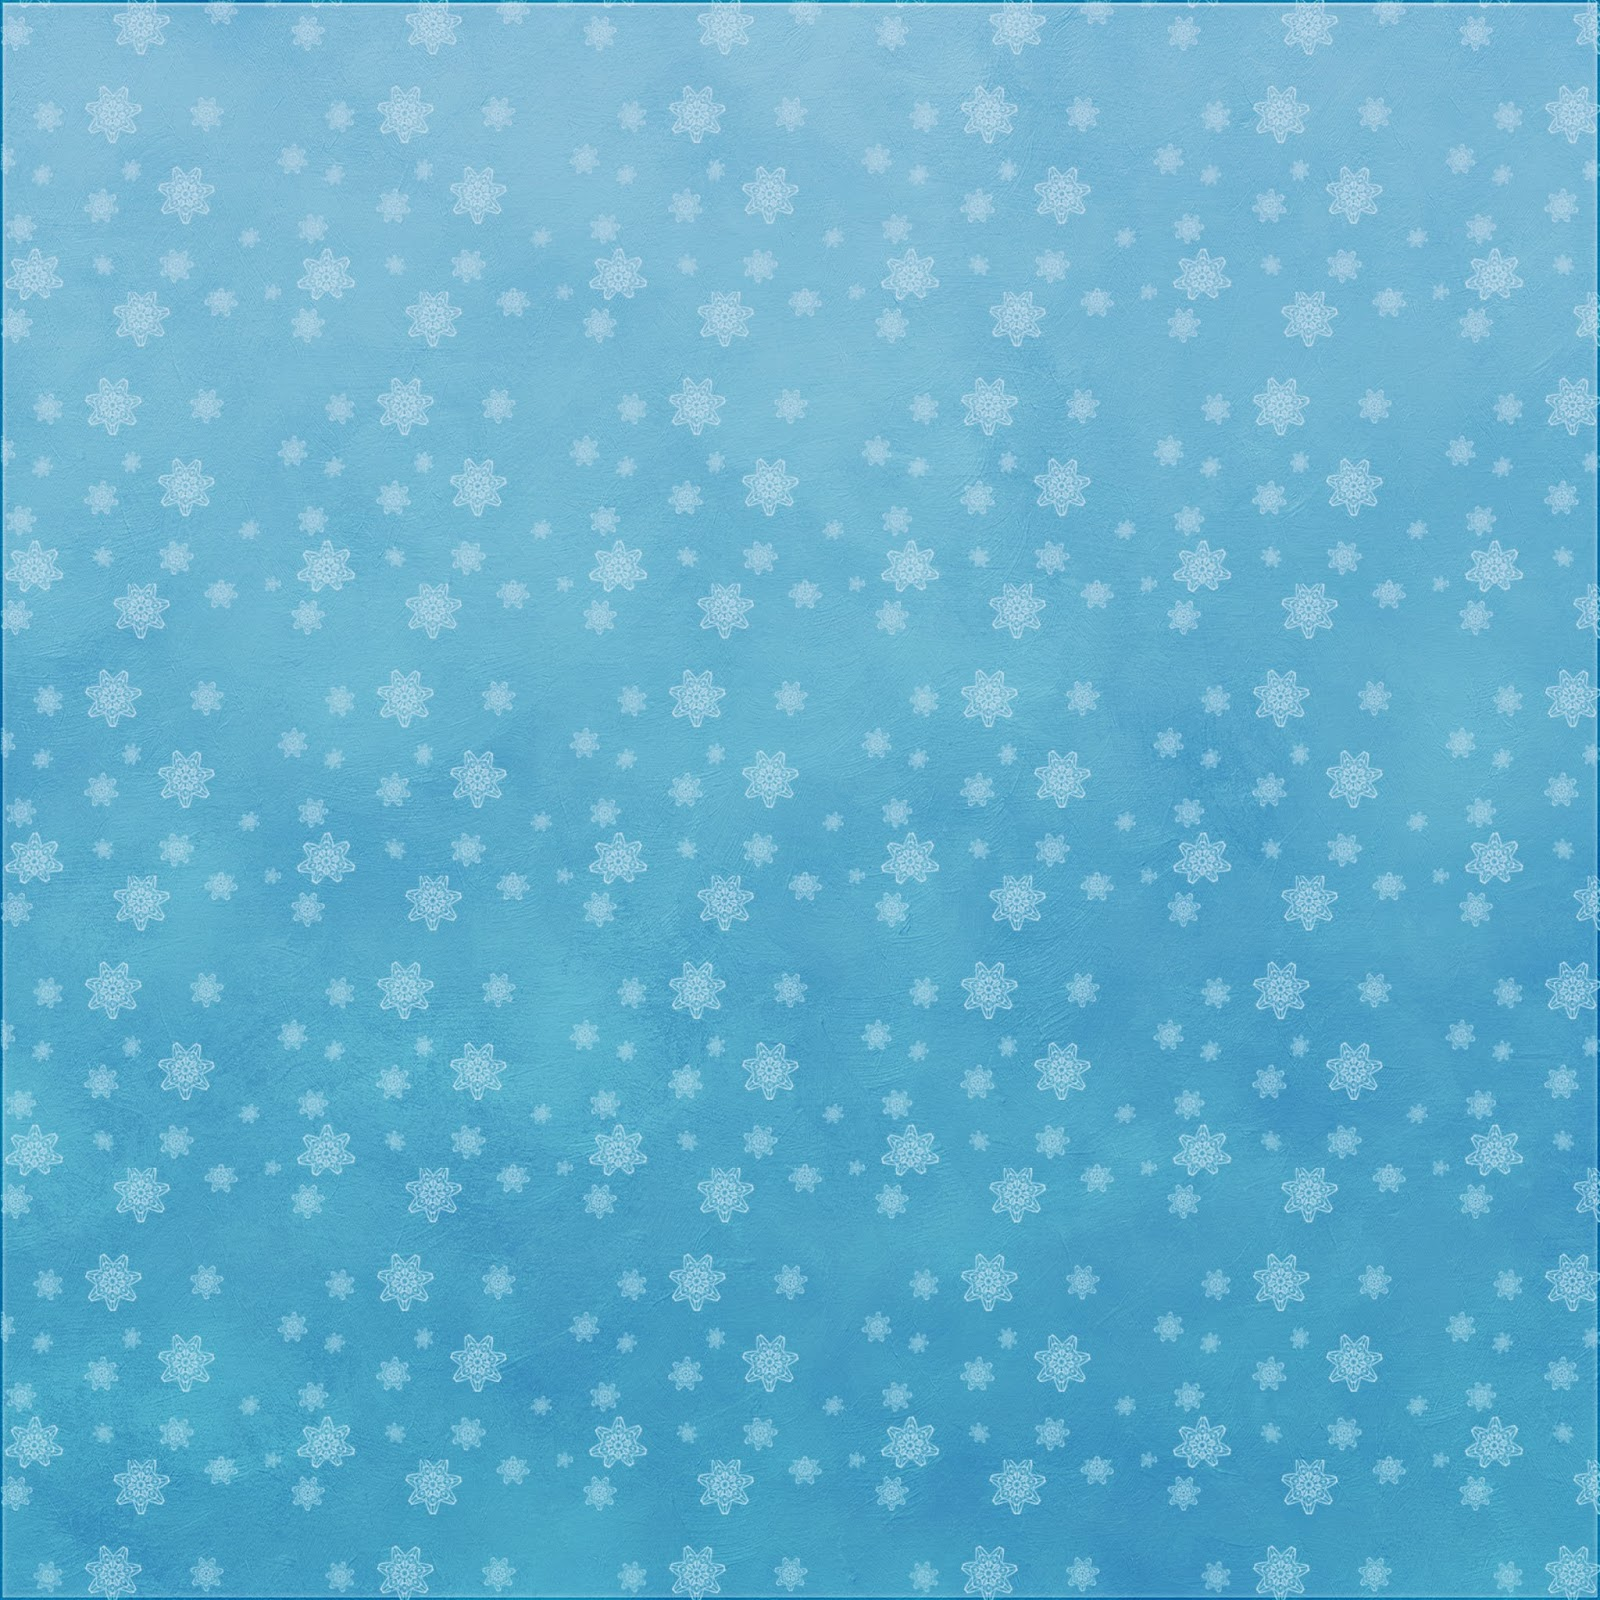 free christmas scrapbook paper high-res aqua